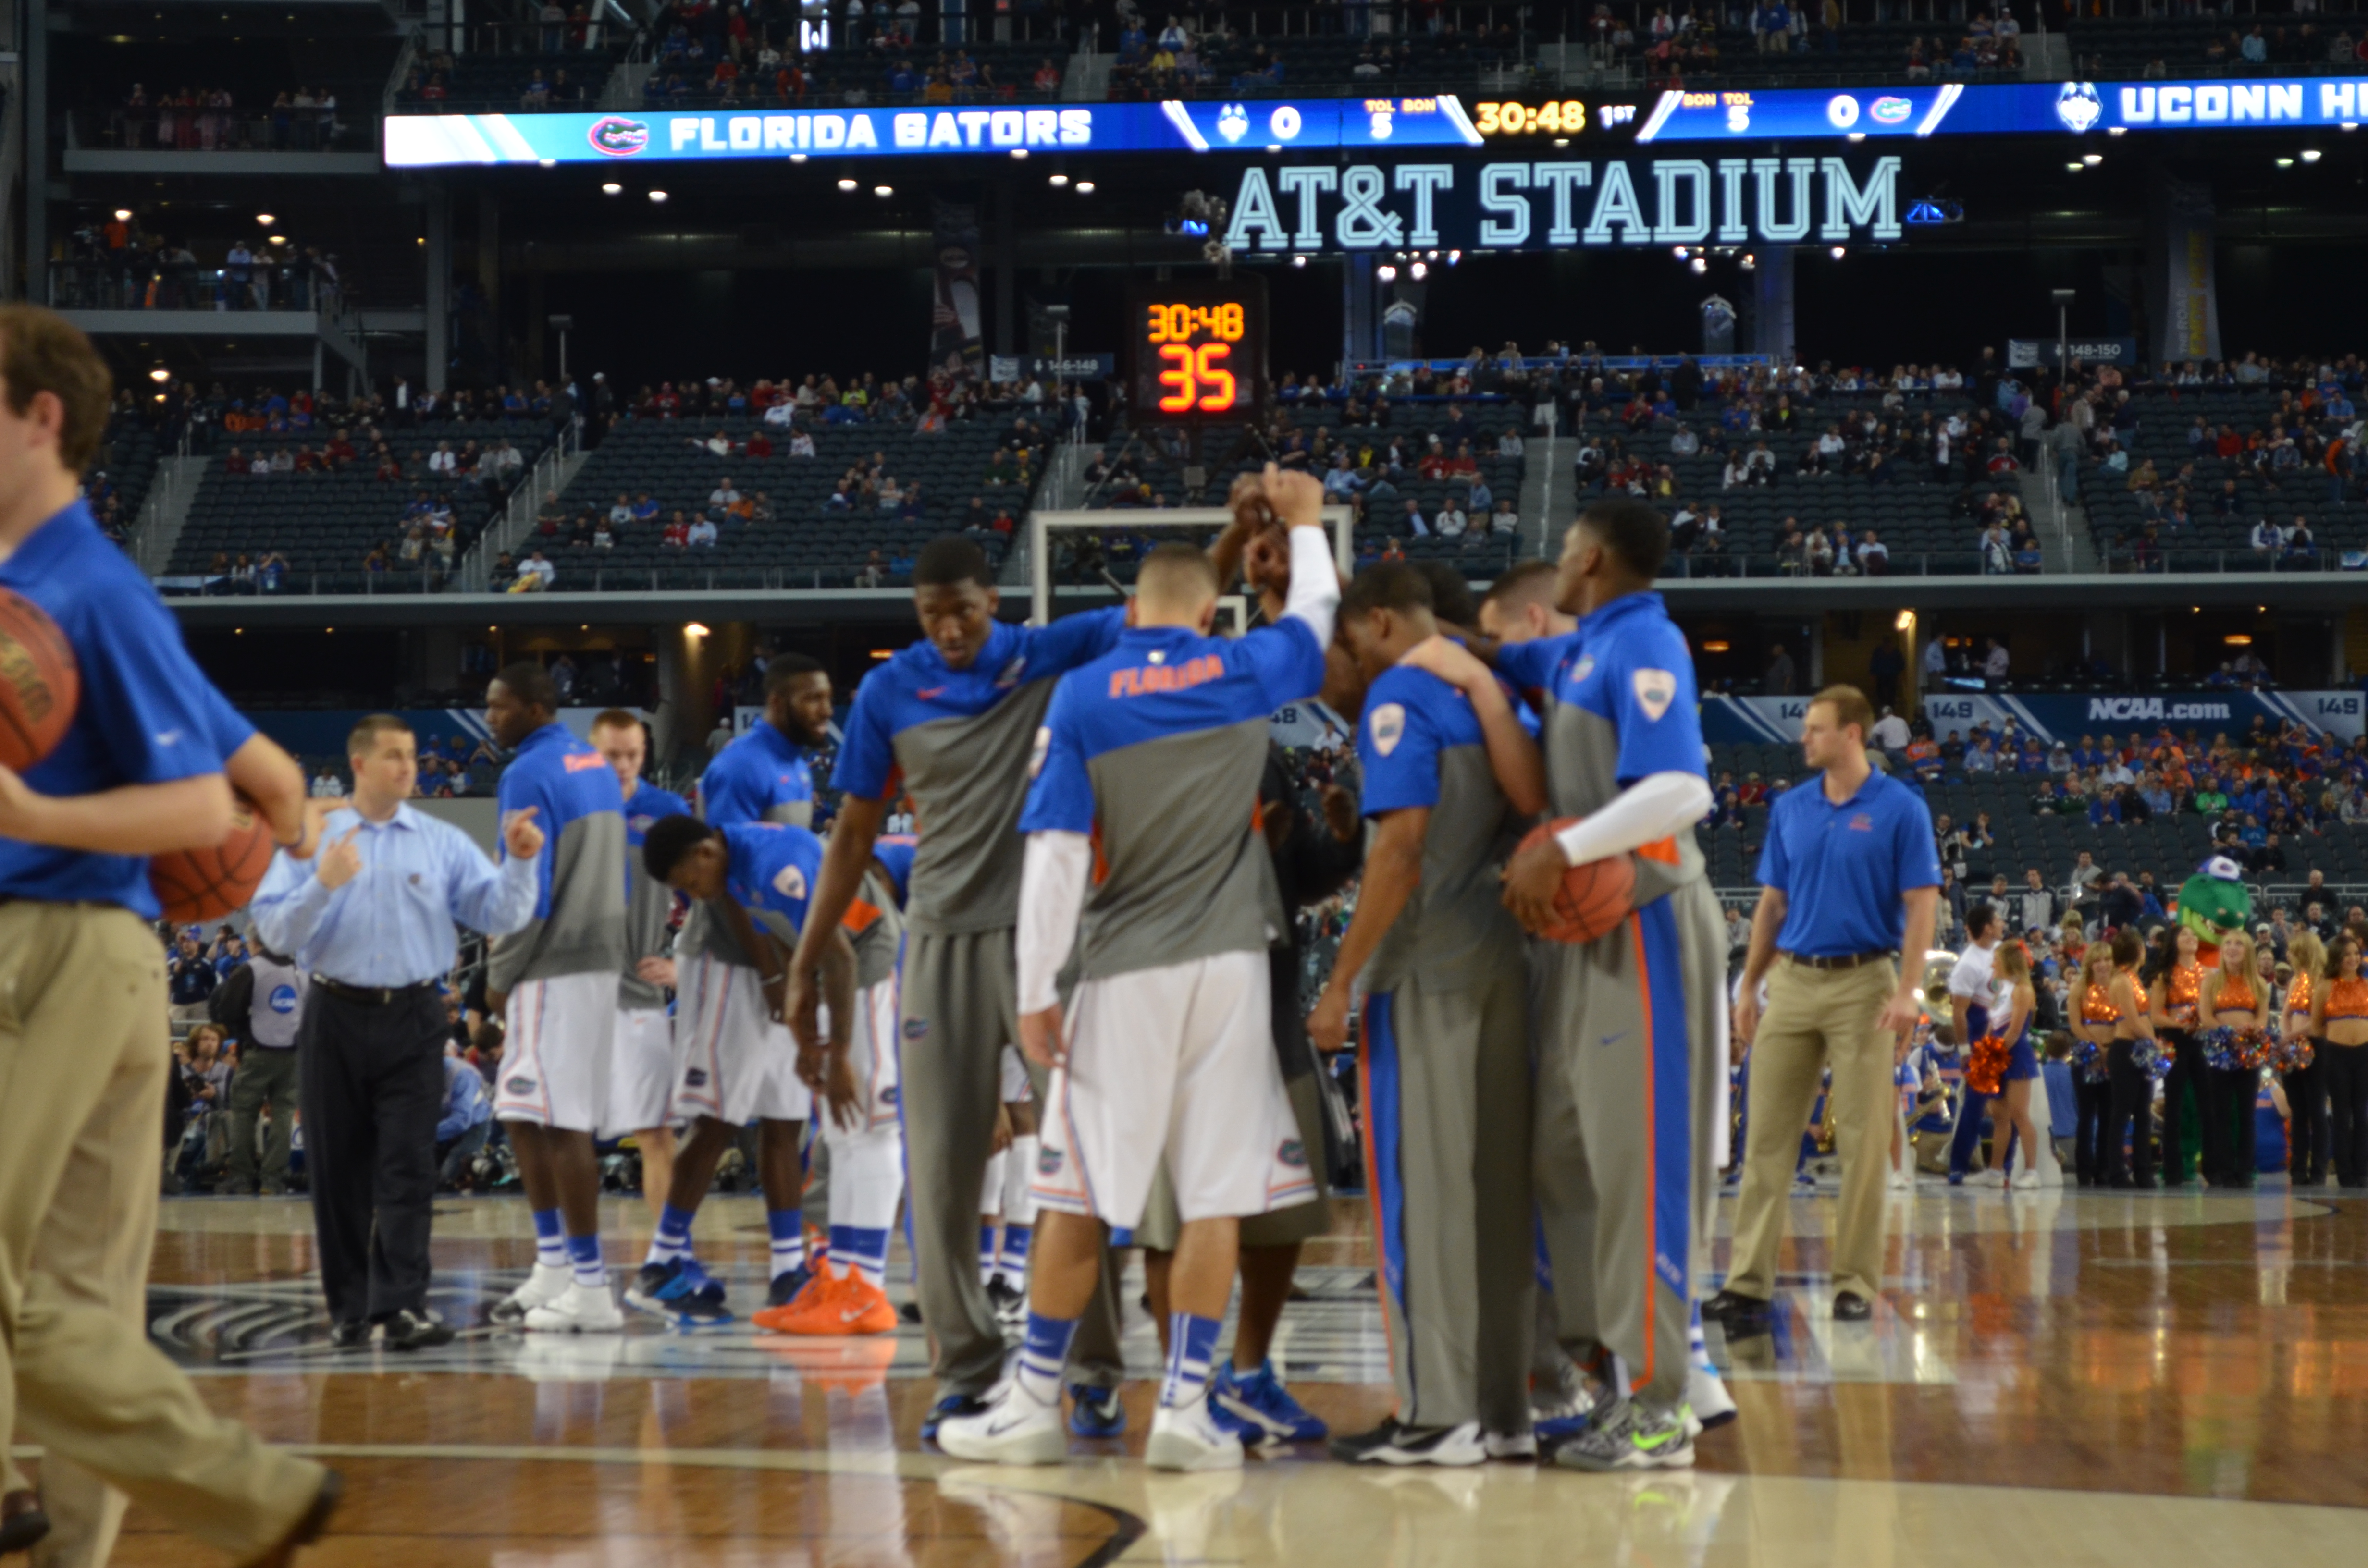 Gators huddle up at the end of shoot around, as they get ready to tip off vs. UConn